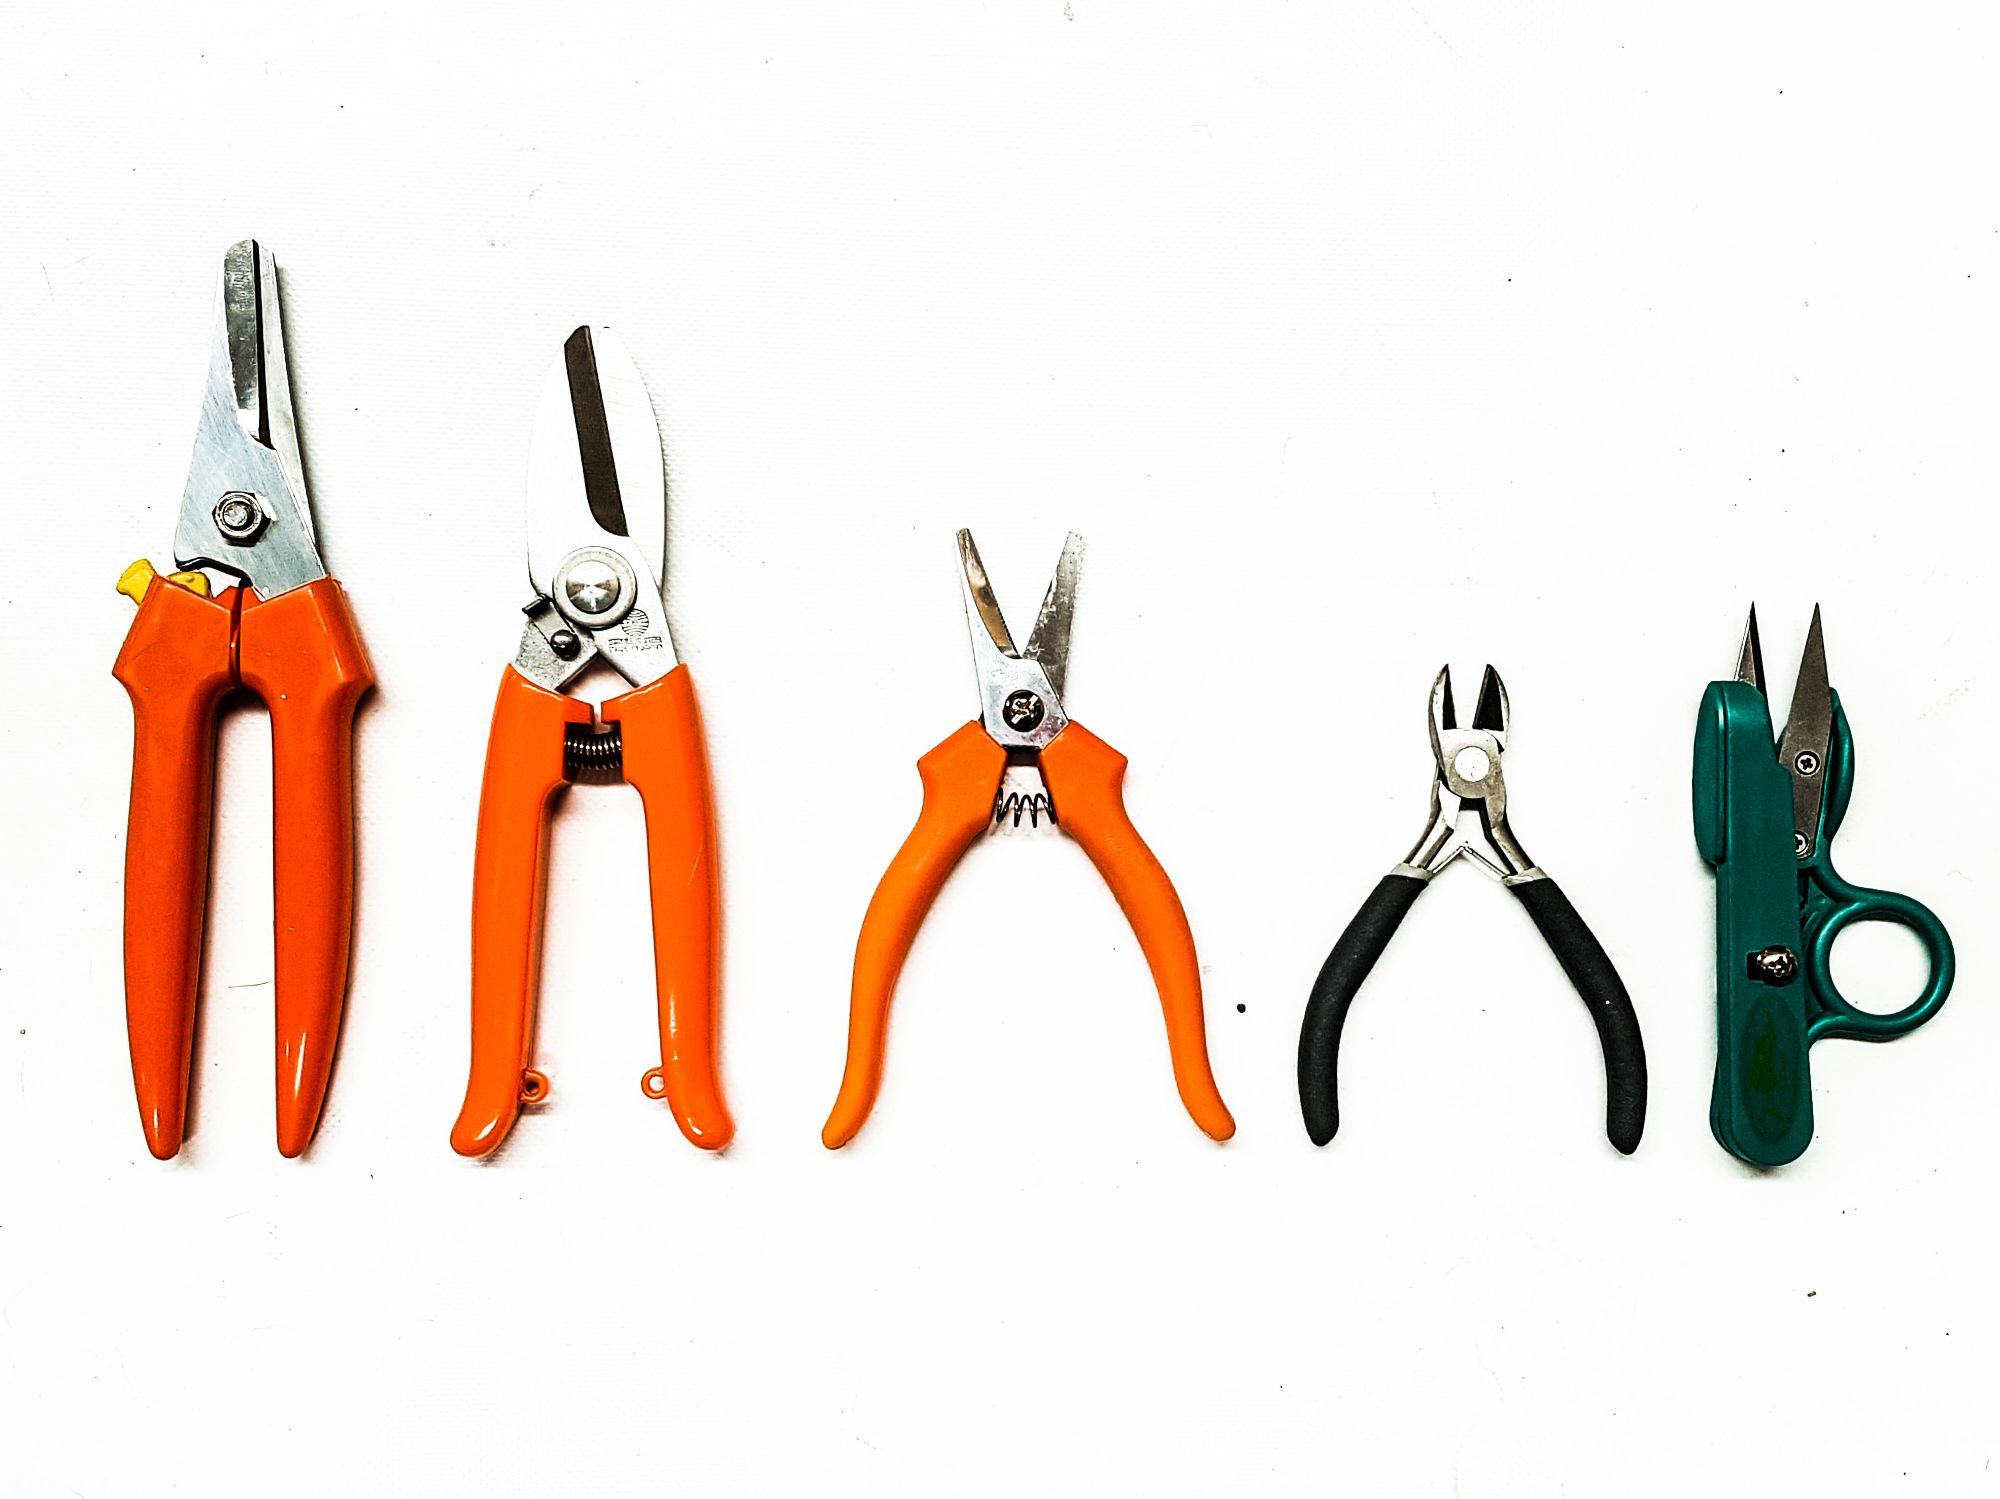 Fishing Cutters For Sale in Perth, Western Australia